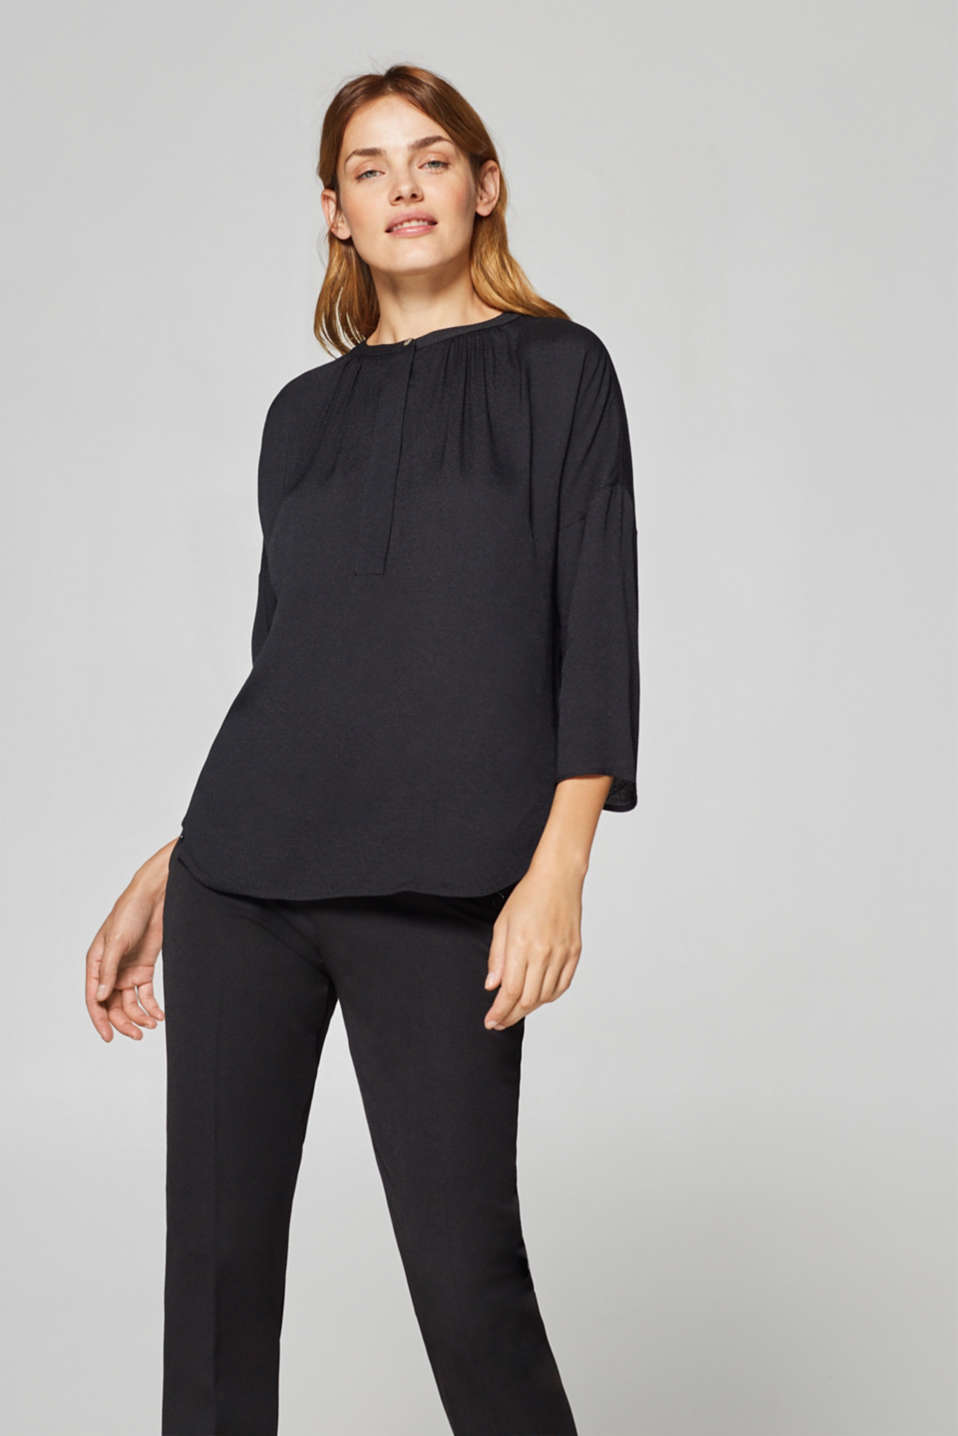 Esprit - Crêpe blouse with a concealed button placket